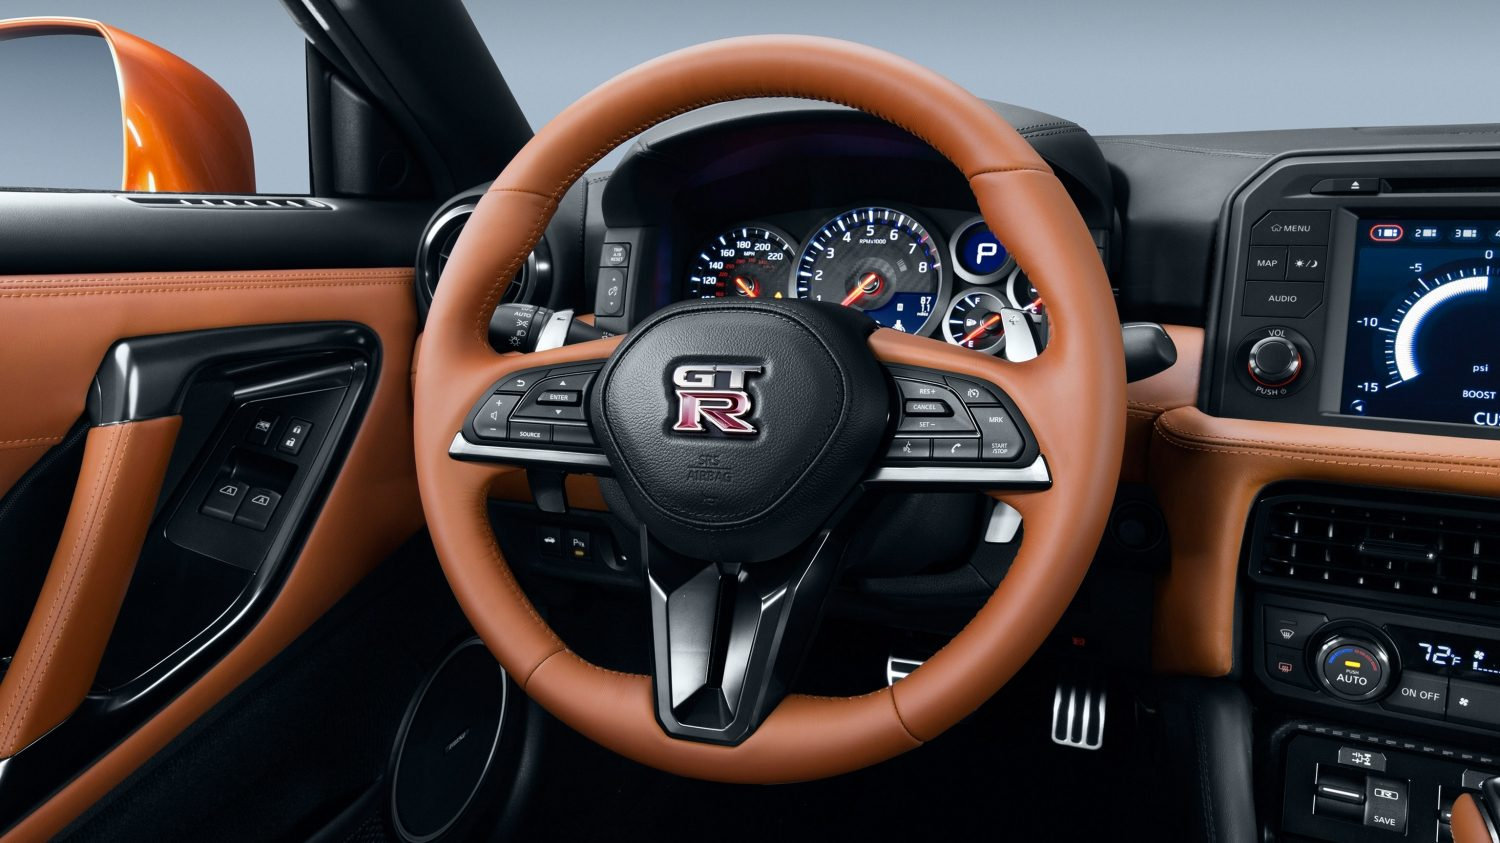 GTR Drivers stearing wheel